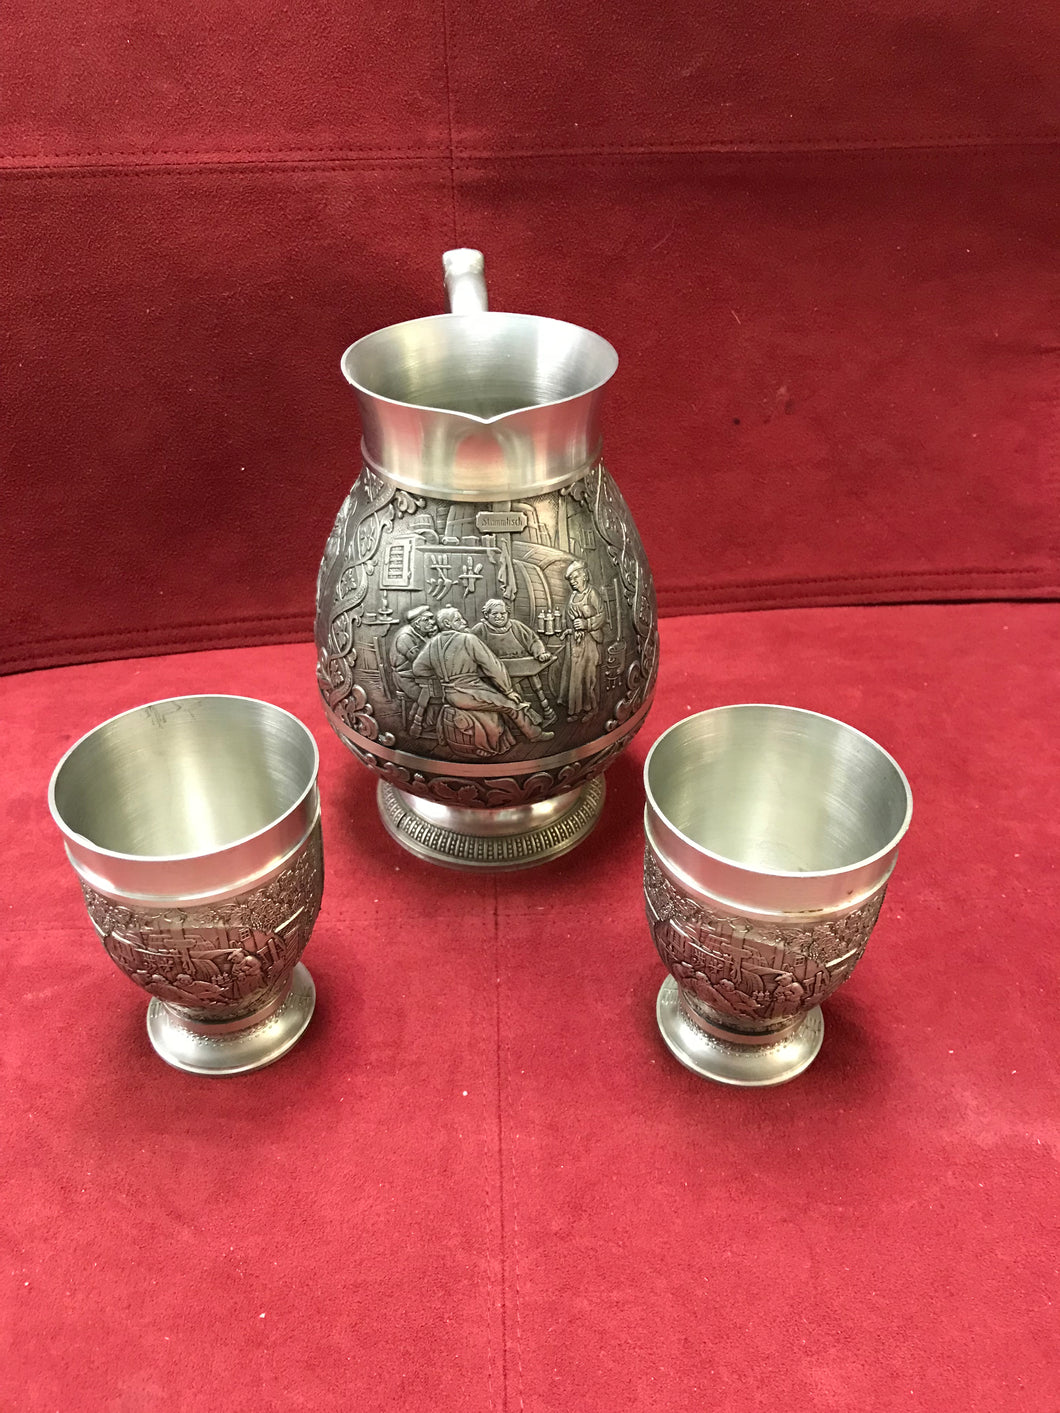 Pewter Jug with cups, Germany, Three Piece Set.